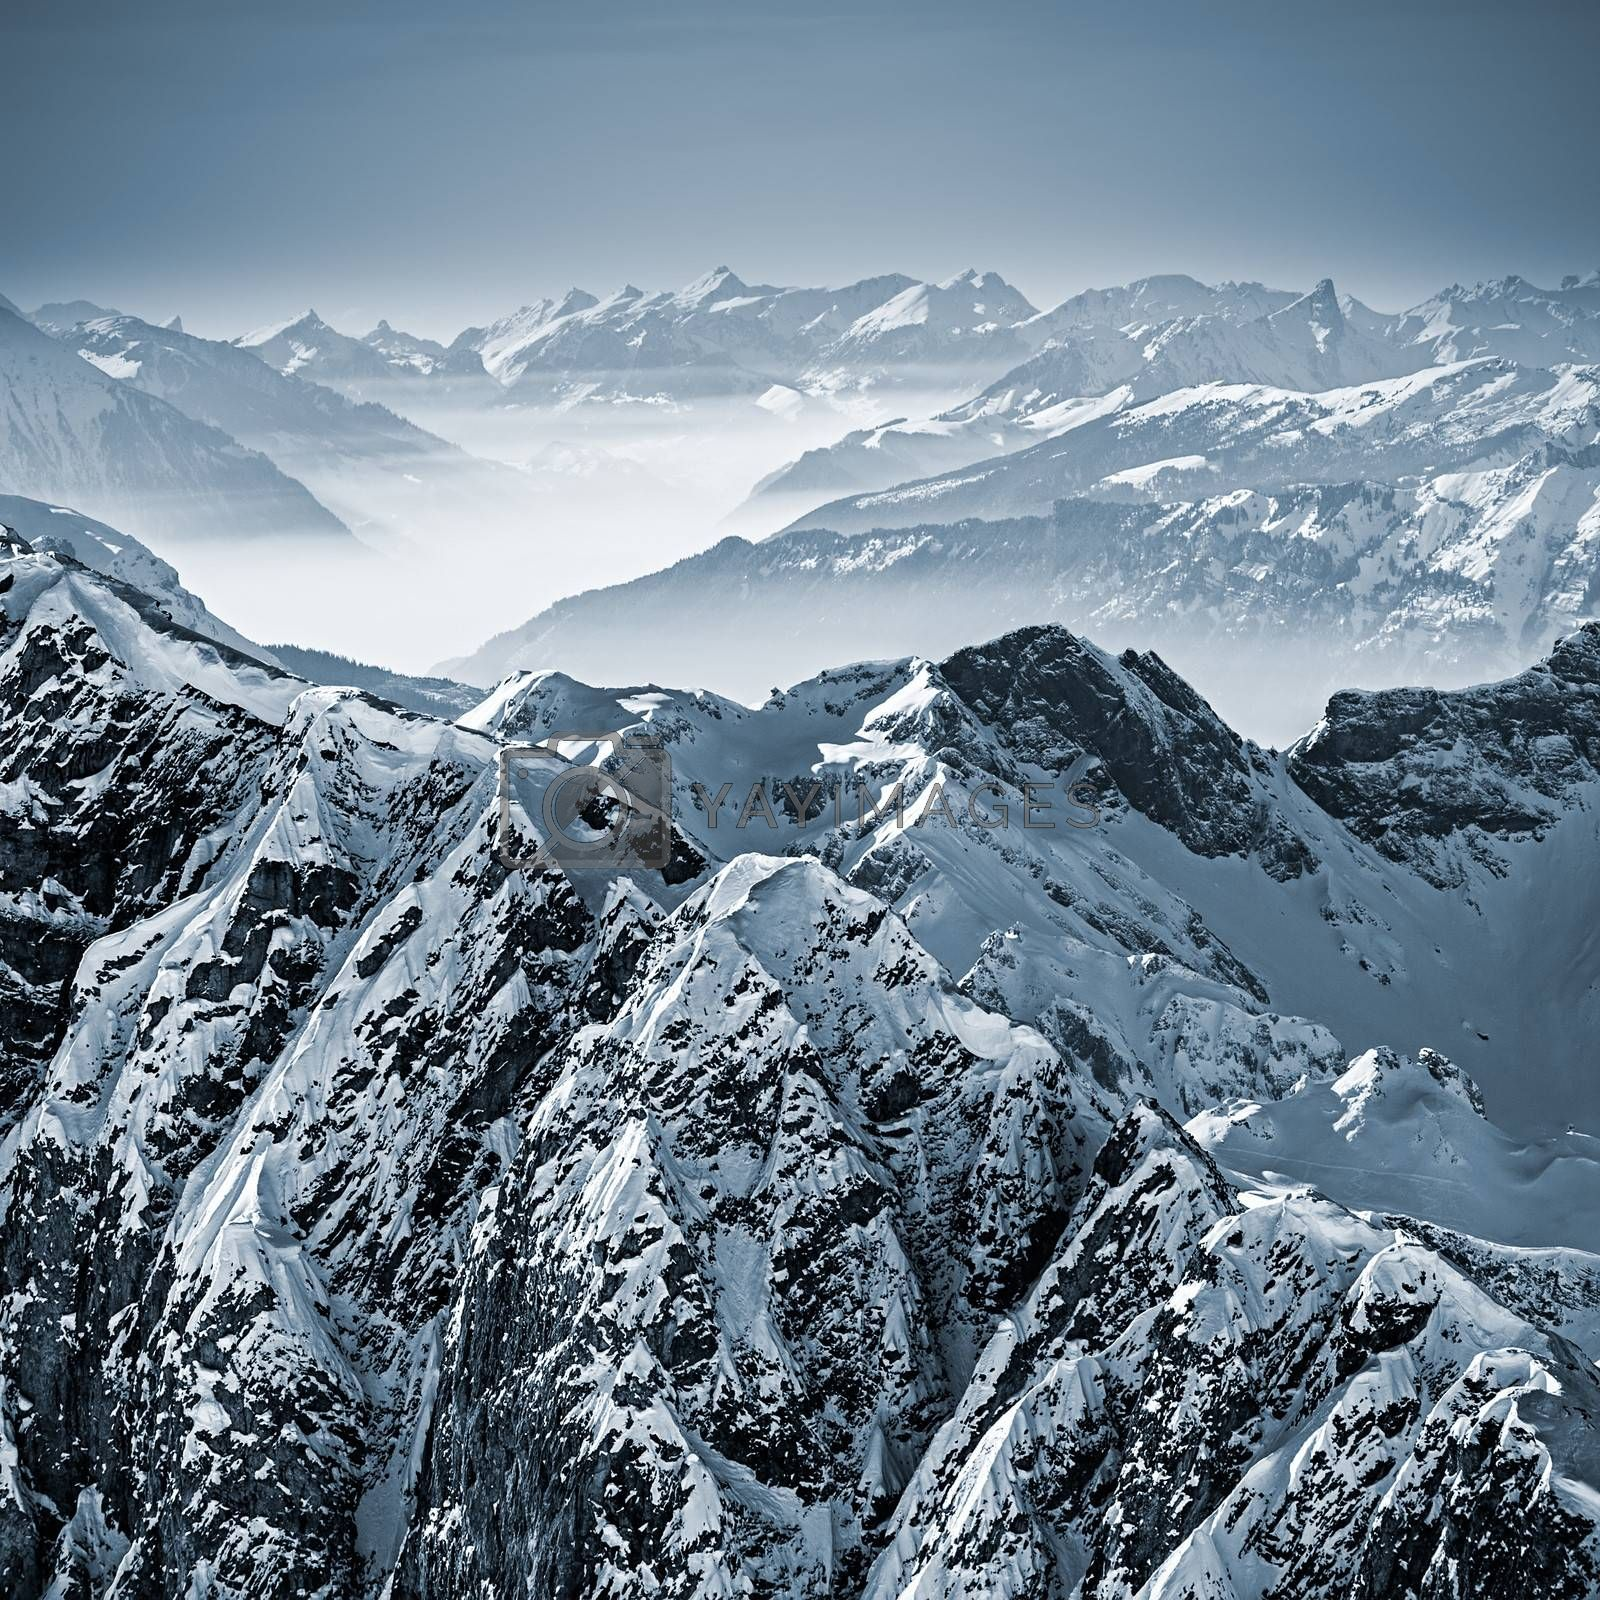 Royalty free image of Snowy Mountains in the Swiss Alps by ajn